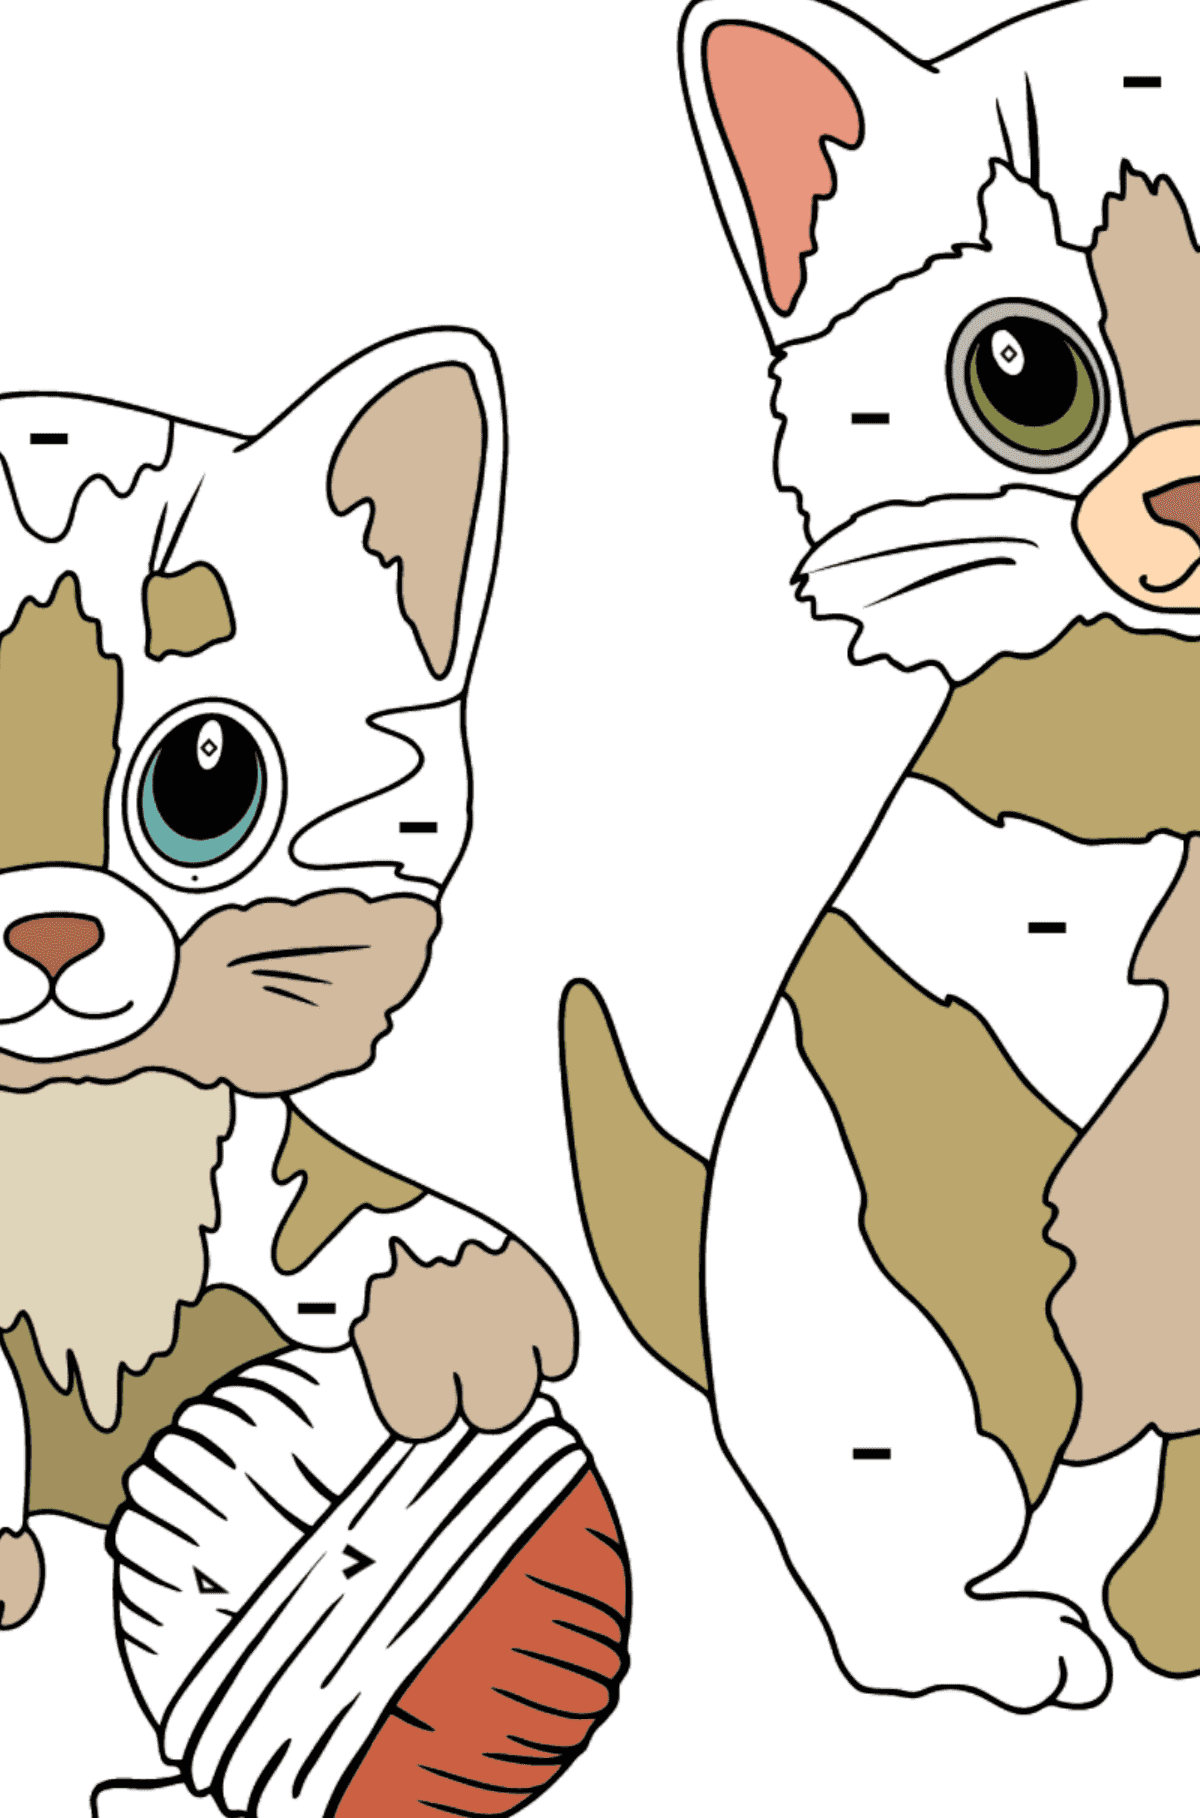 Coloring Page - Kitty Cat - Coloring by Symbols and Geometric Shapes for Kids